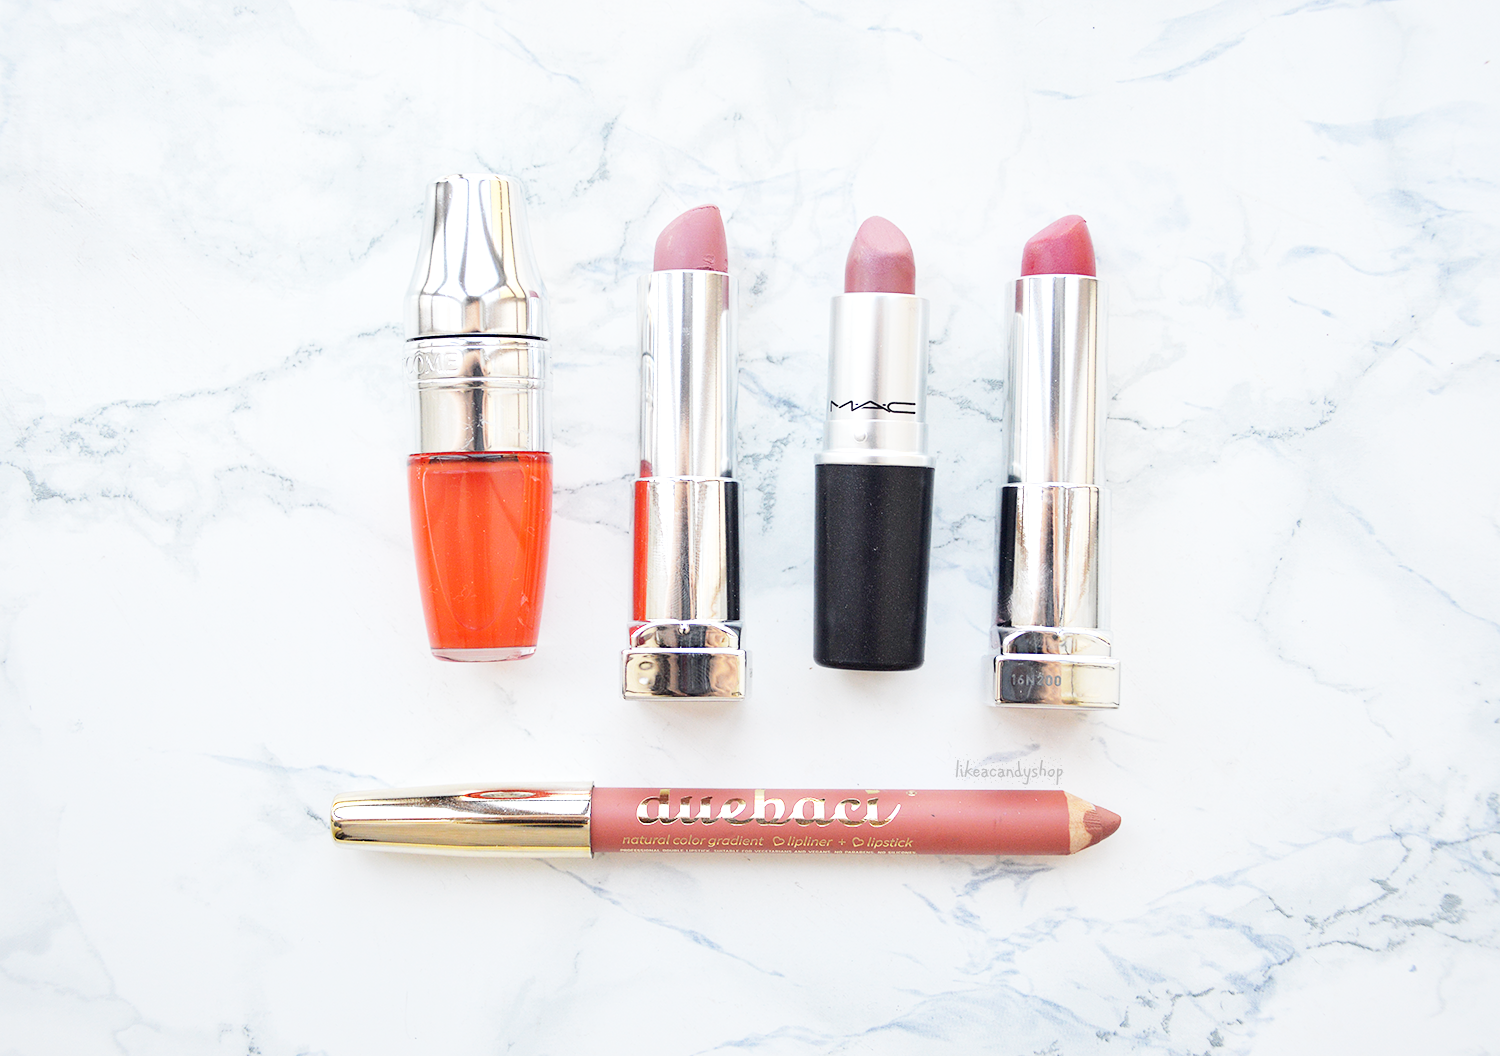 maybelline mac lancome lipsticks